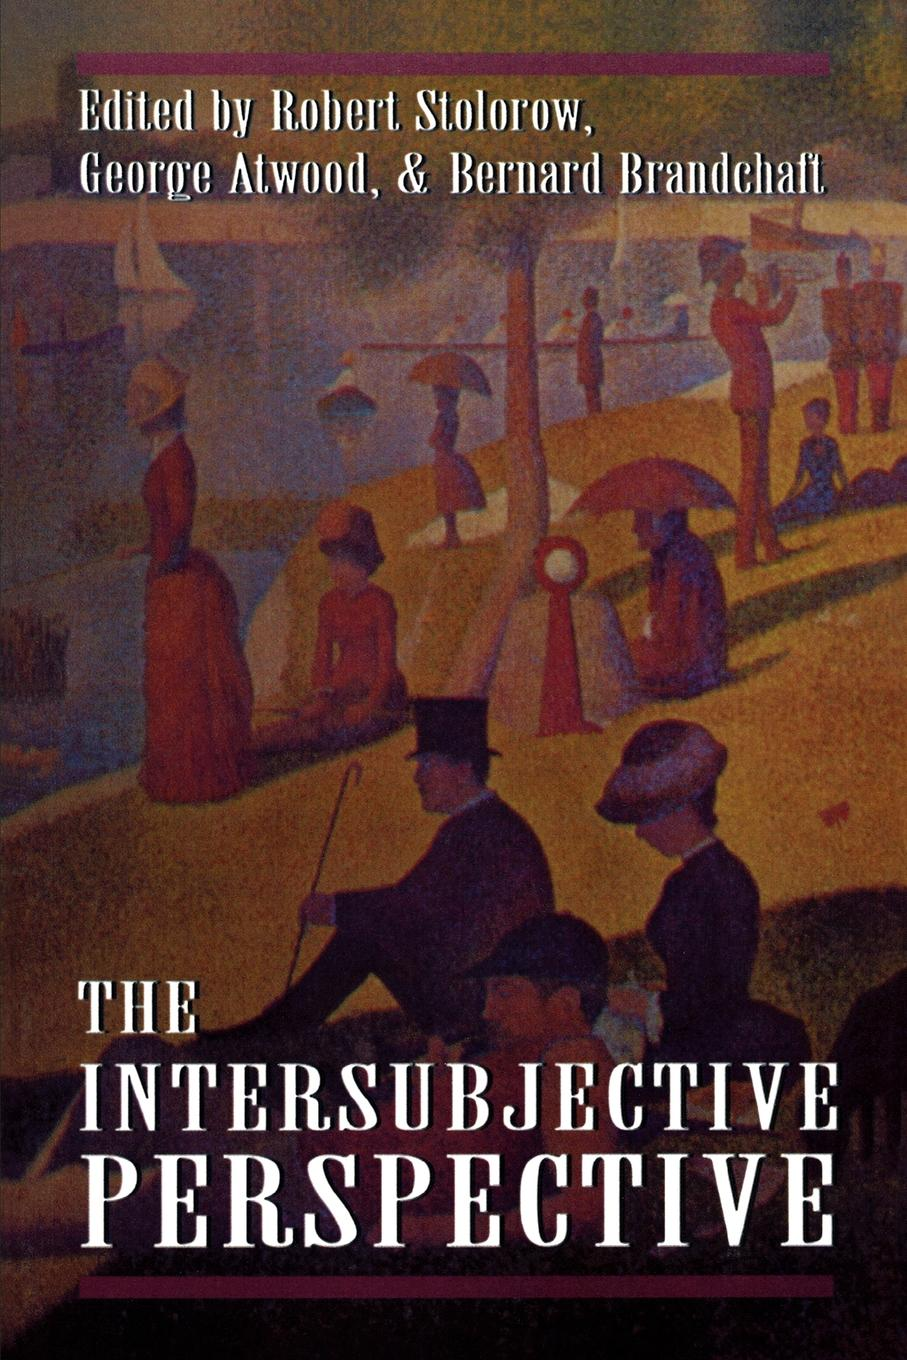 The Intersubjective Perspective